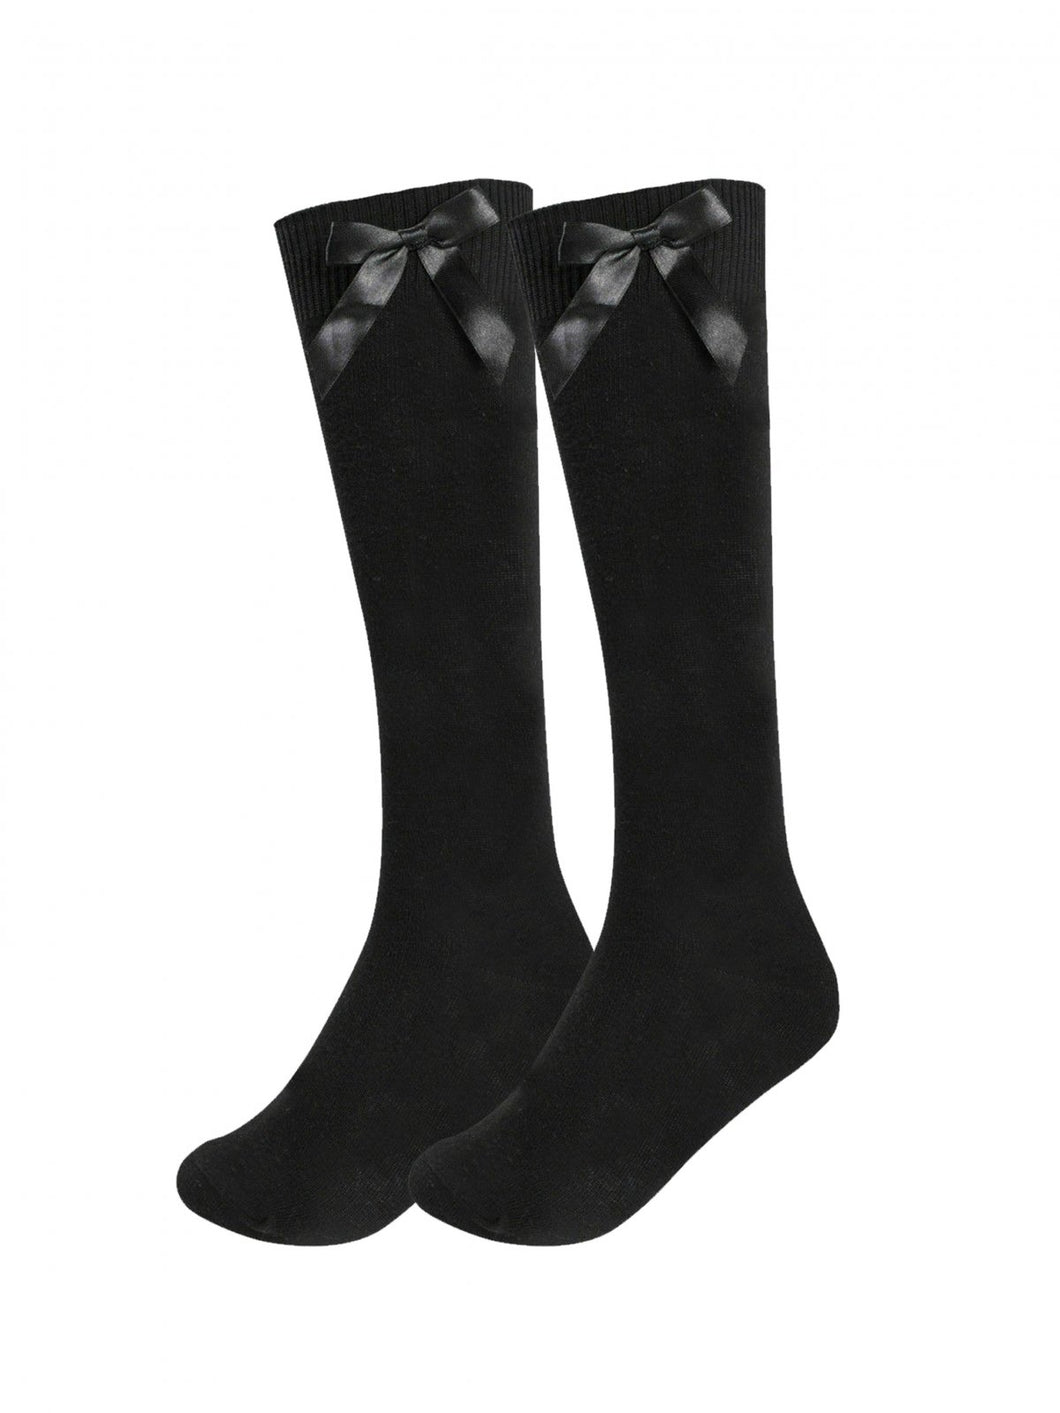 3 Pack Black Knee High Socks With Bow